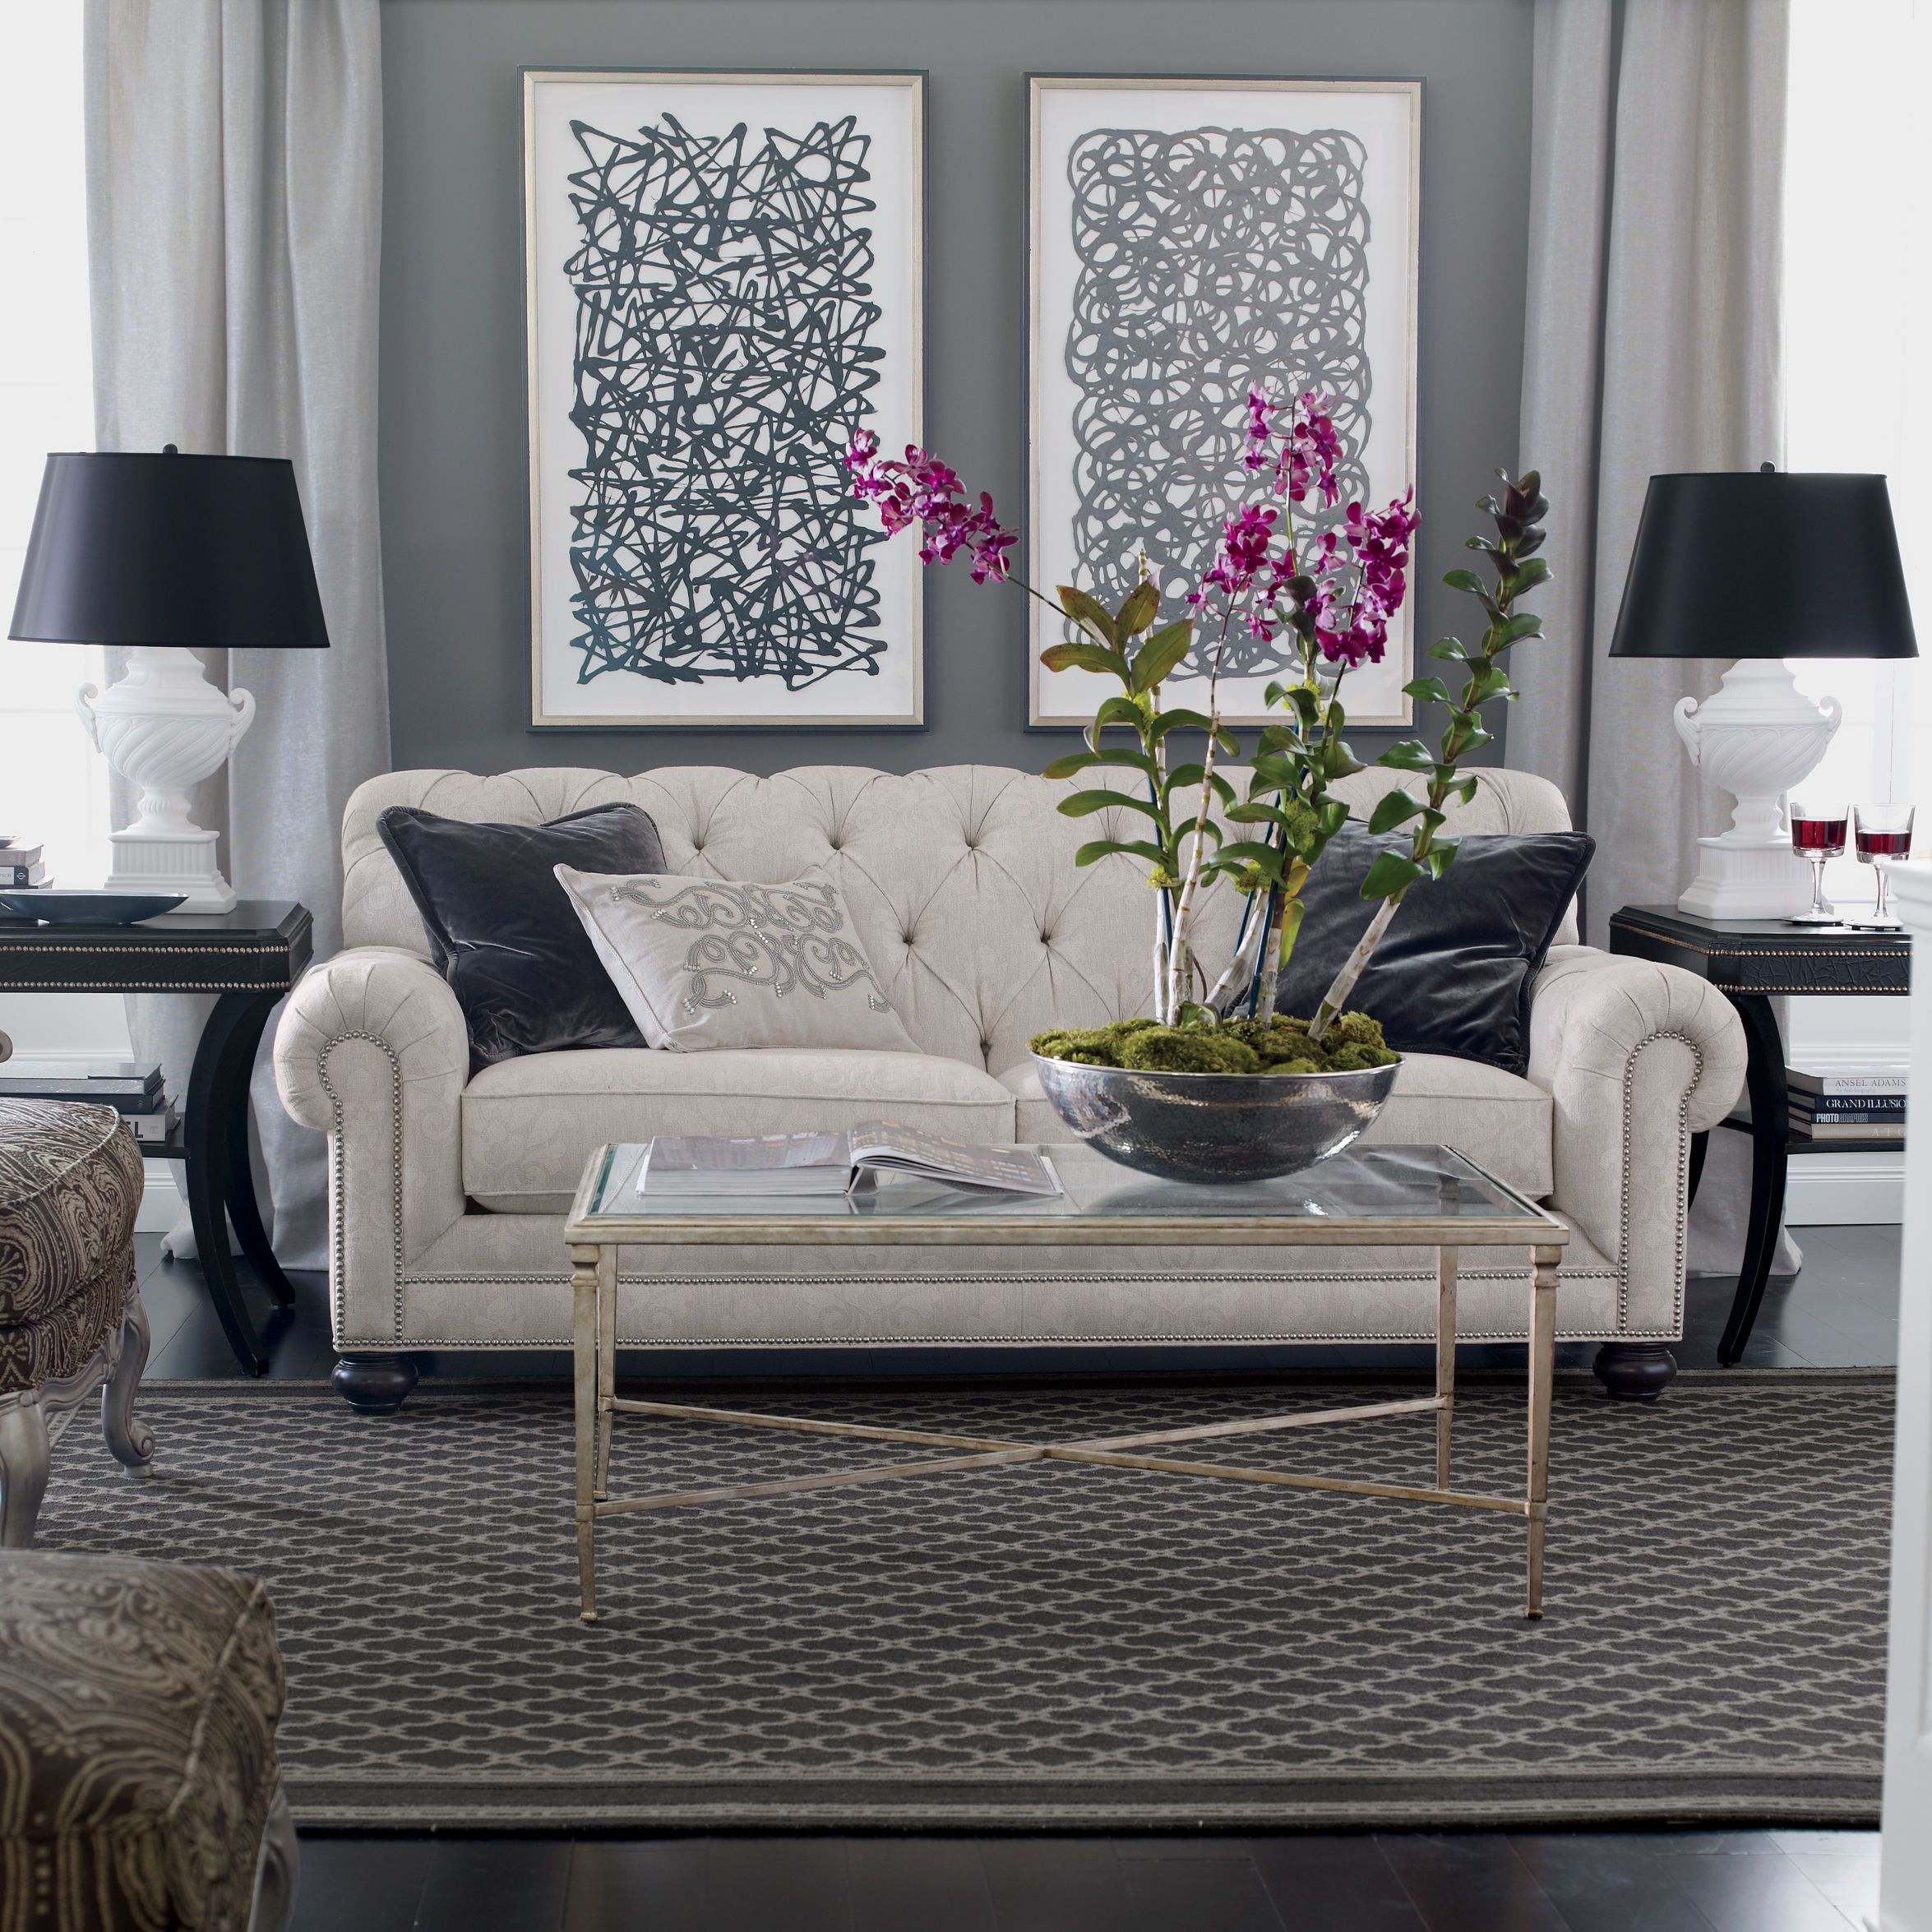 Chadwick Sofa Ethan Allen Reviews Fabric Suppliers Uk Home Decor Photos Gallery For The Living Room Rh Pinterest Com